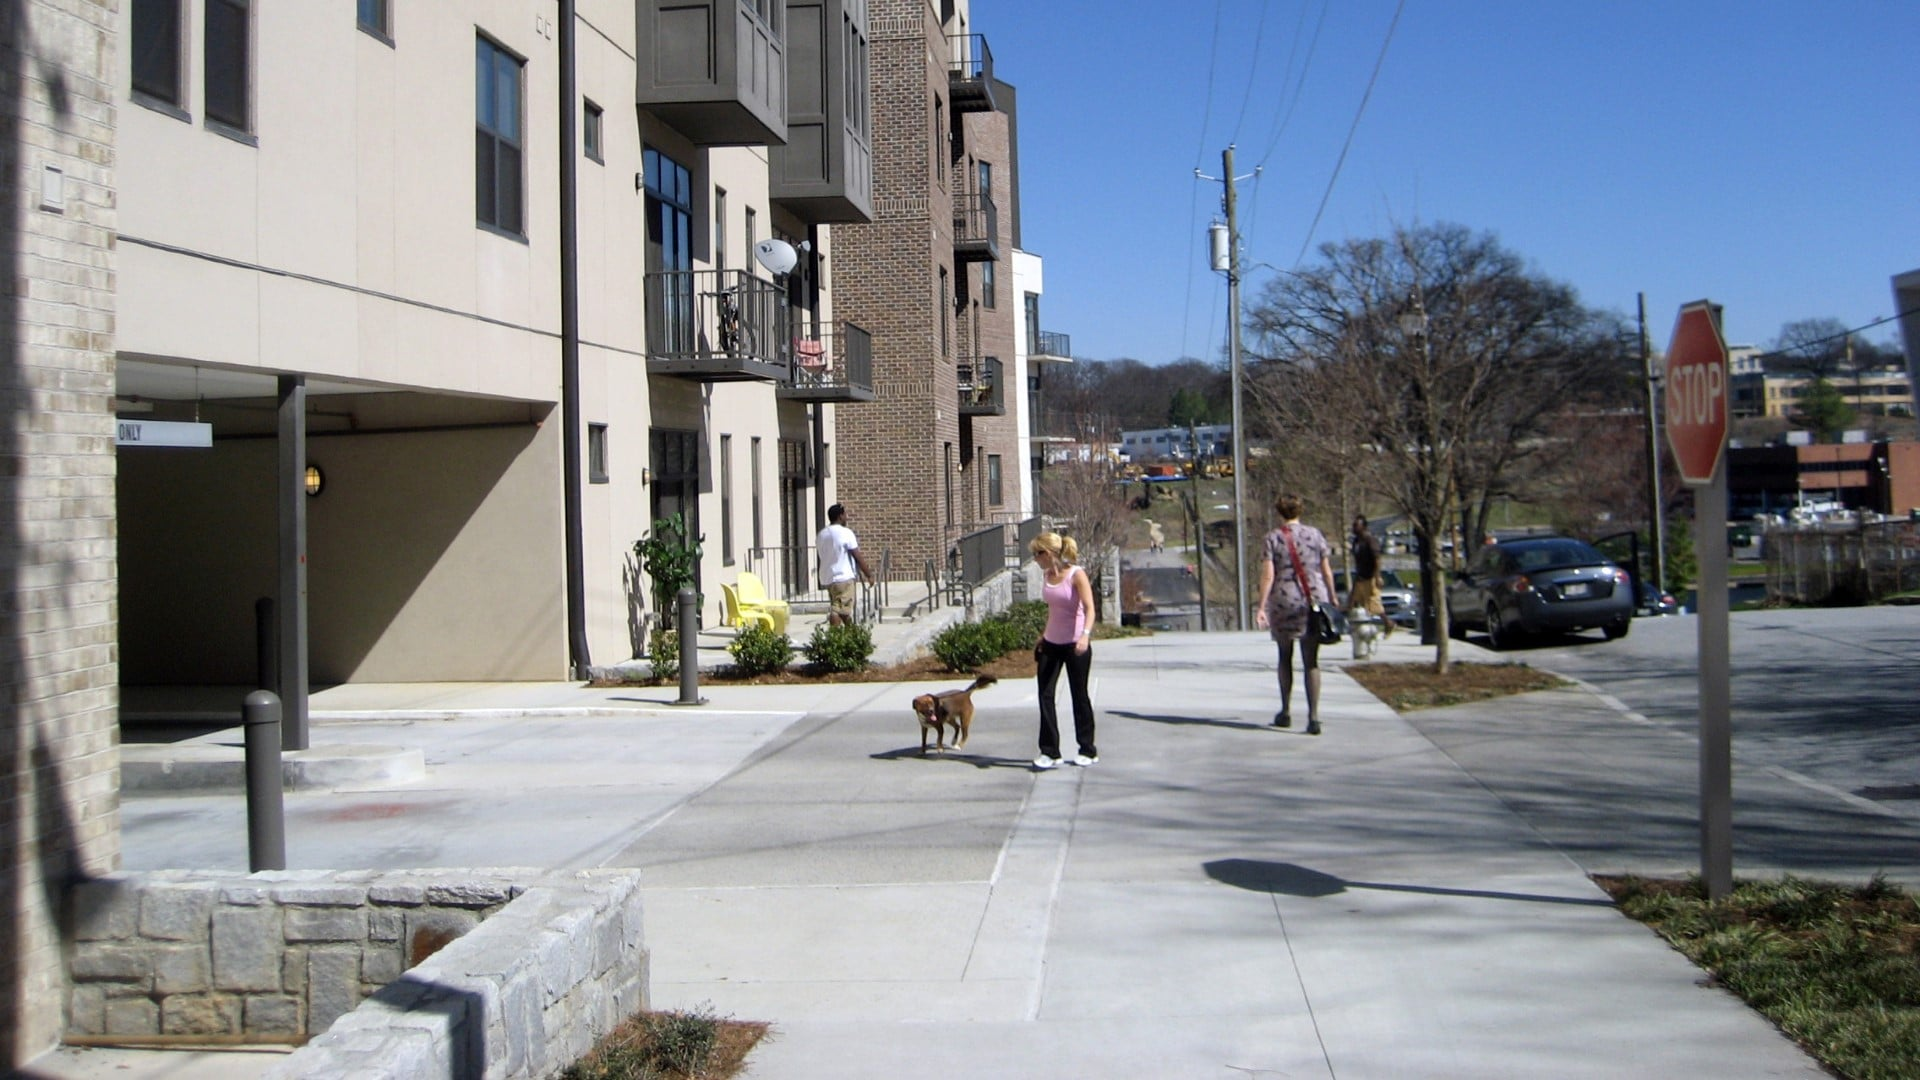 The Fourth Streetscape